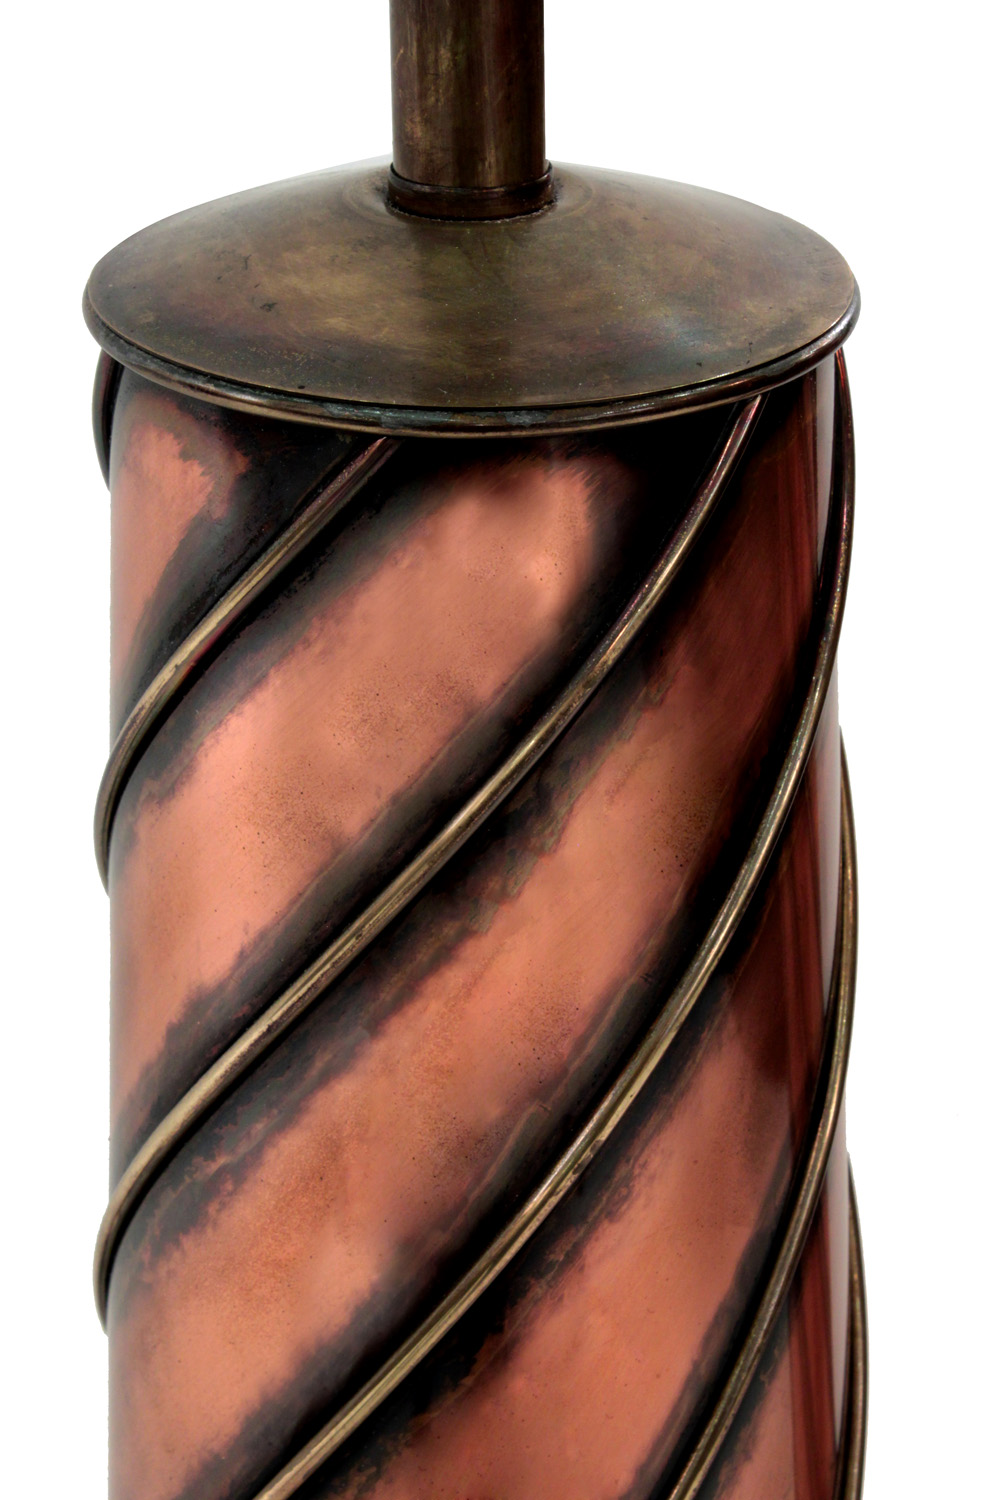 40's 85 French copper+brass swirl tablelamps322 detail2 hires.jpg